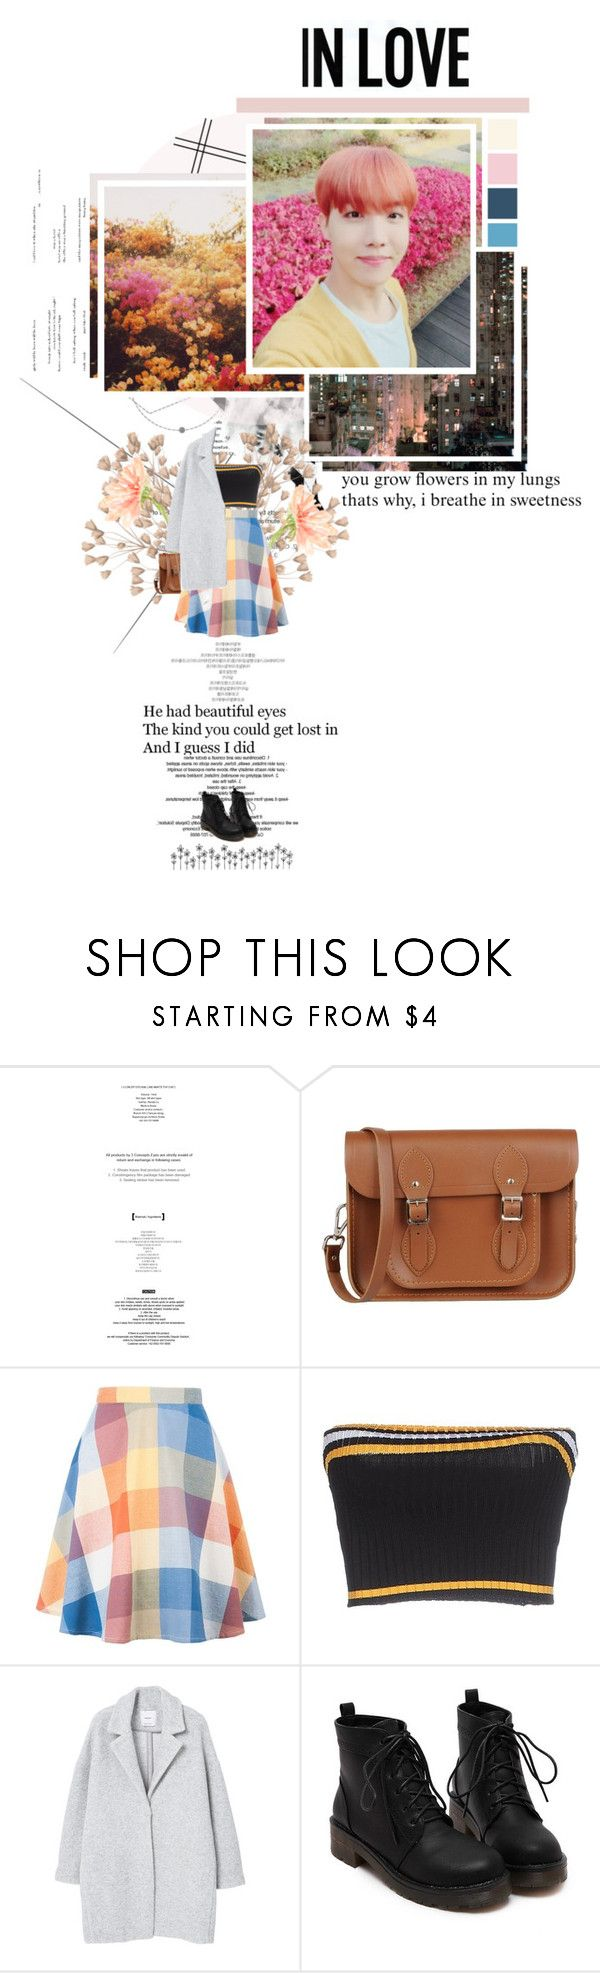 """""""🌸 ~ Star // Jung Joon Young ~ 🌸"""" by xxjay-gxx ❤ liked on Polyvore featuring StyleNanda, The Cambridge Satchel Company, Prada, MANGO, bts, polyvorefashion, hobi and J_Hope"""